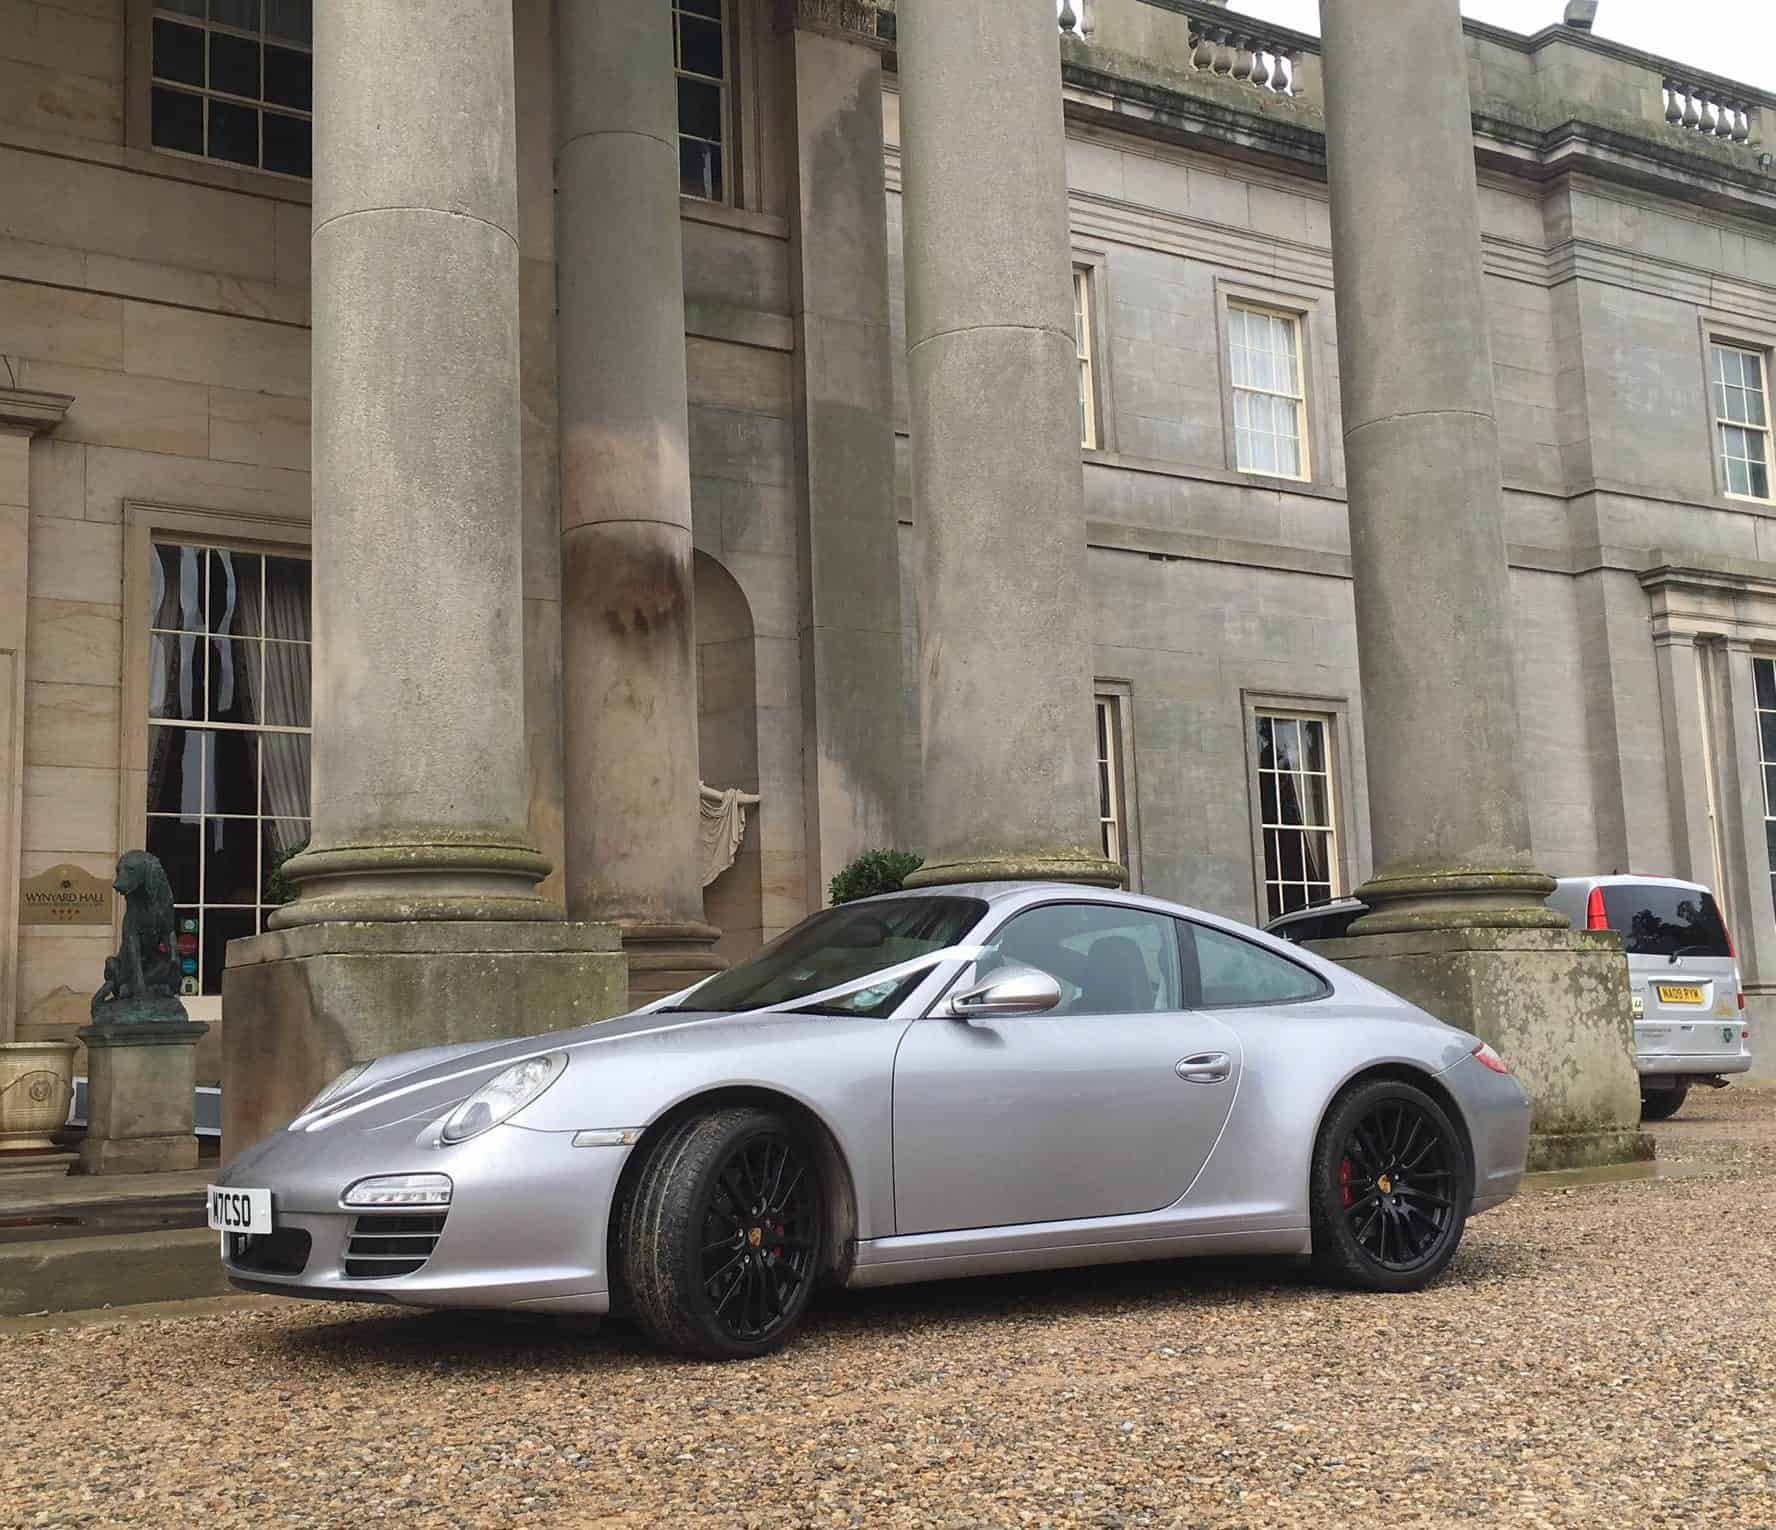 My car at our wedding venue. I had to get a picture outside such a beautiful building!